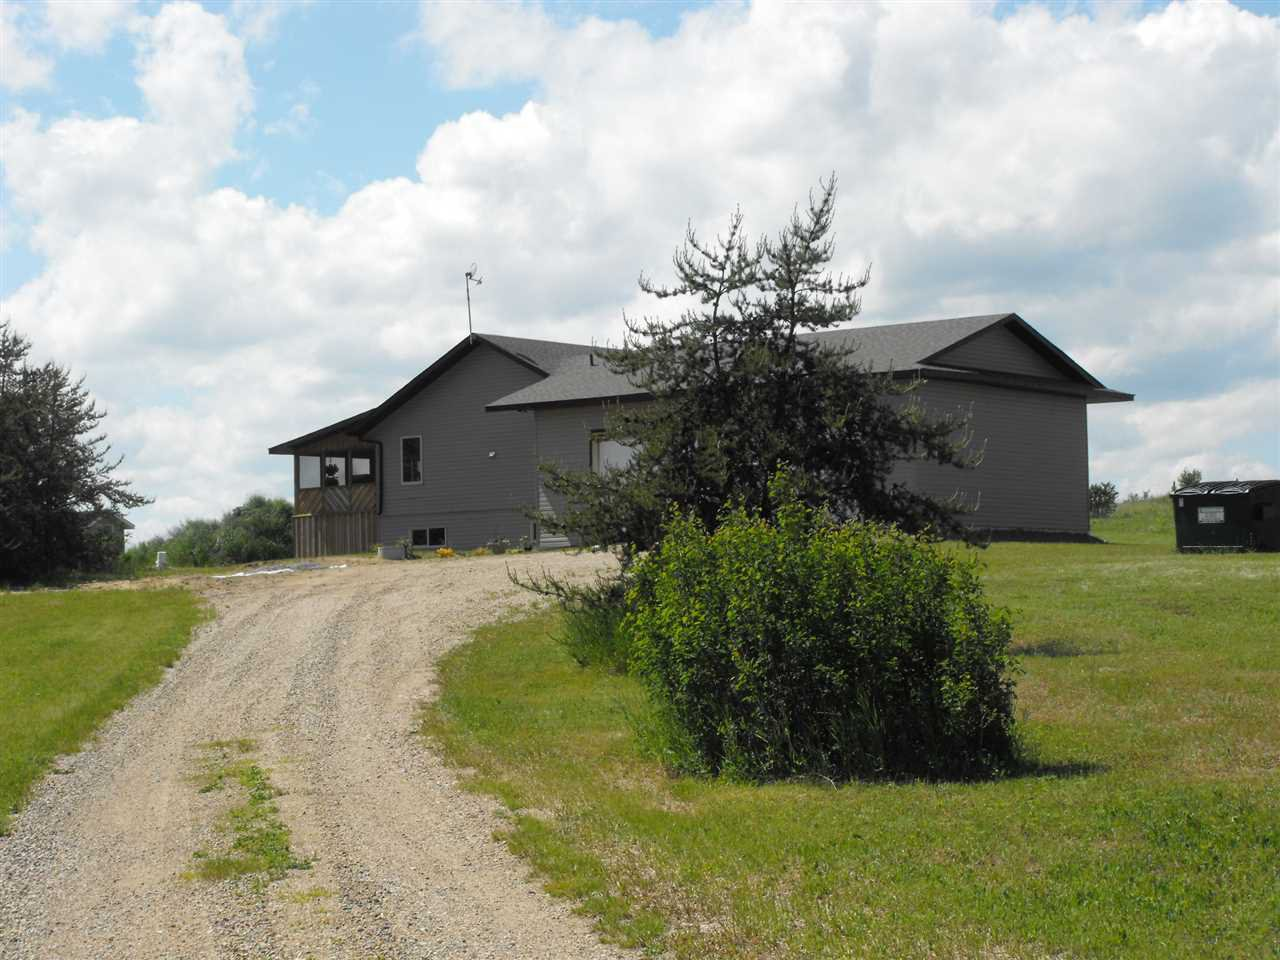 Main Photo: 100 56514 RR 60: Rural St. Paul County House for sale : MLS®# E4171885